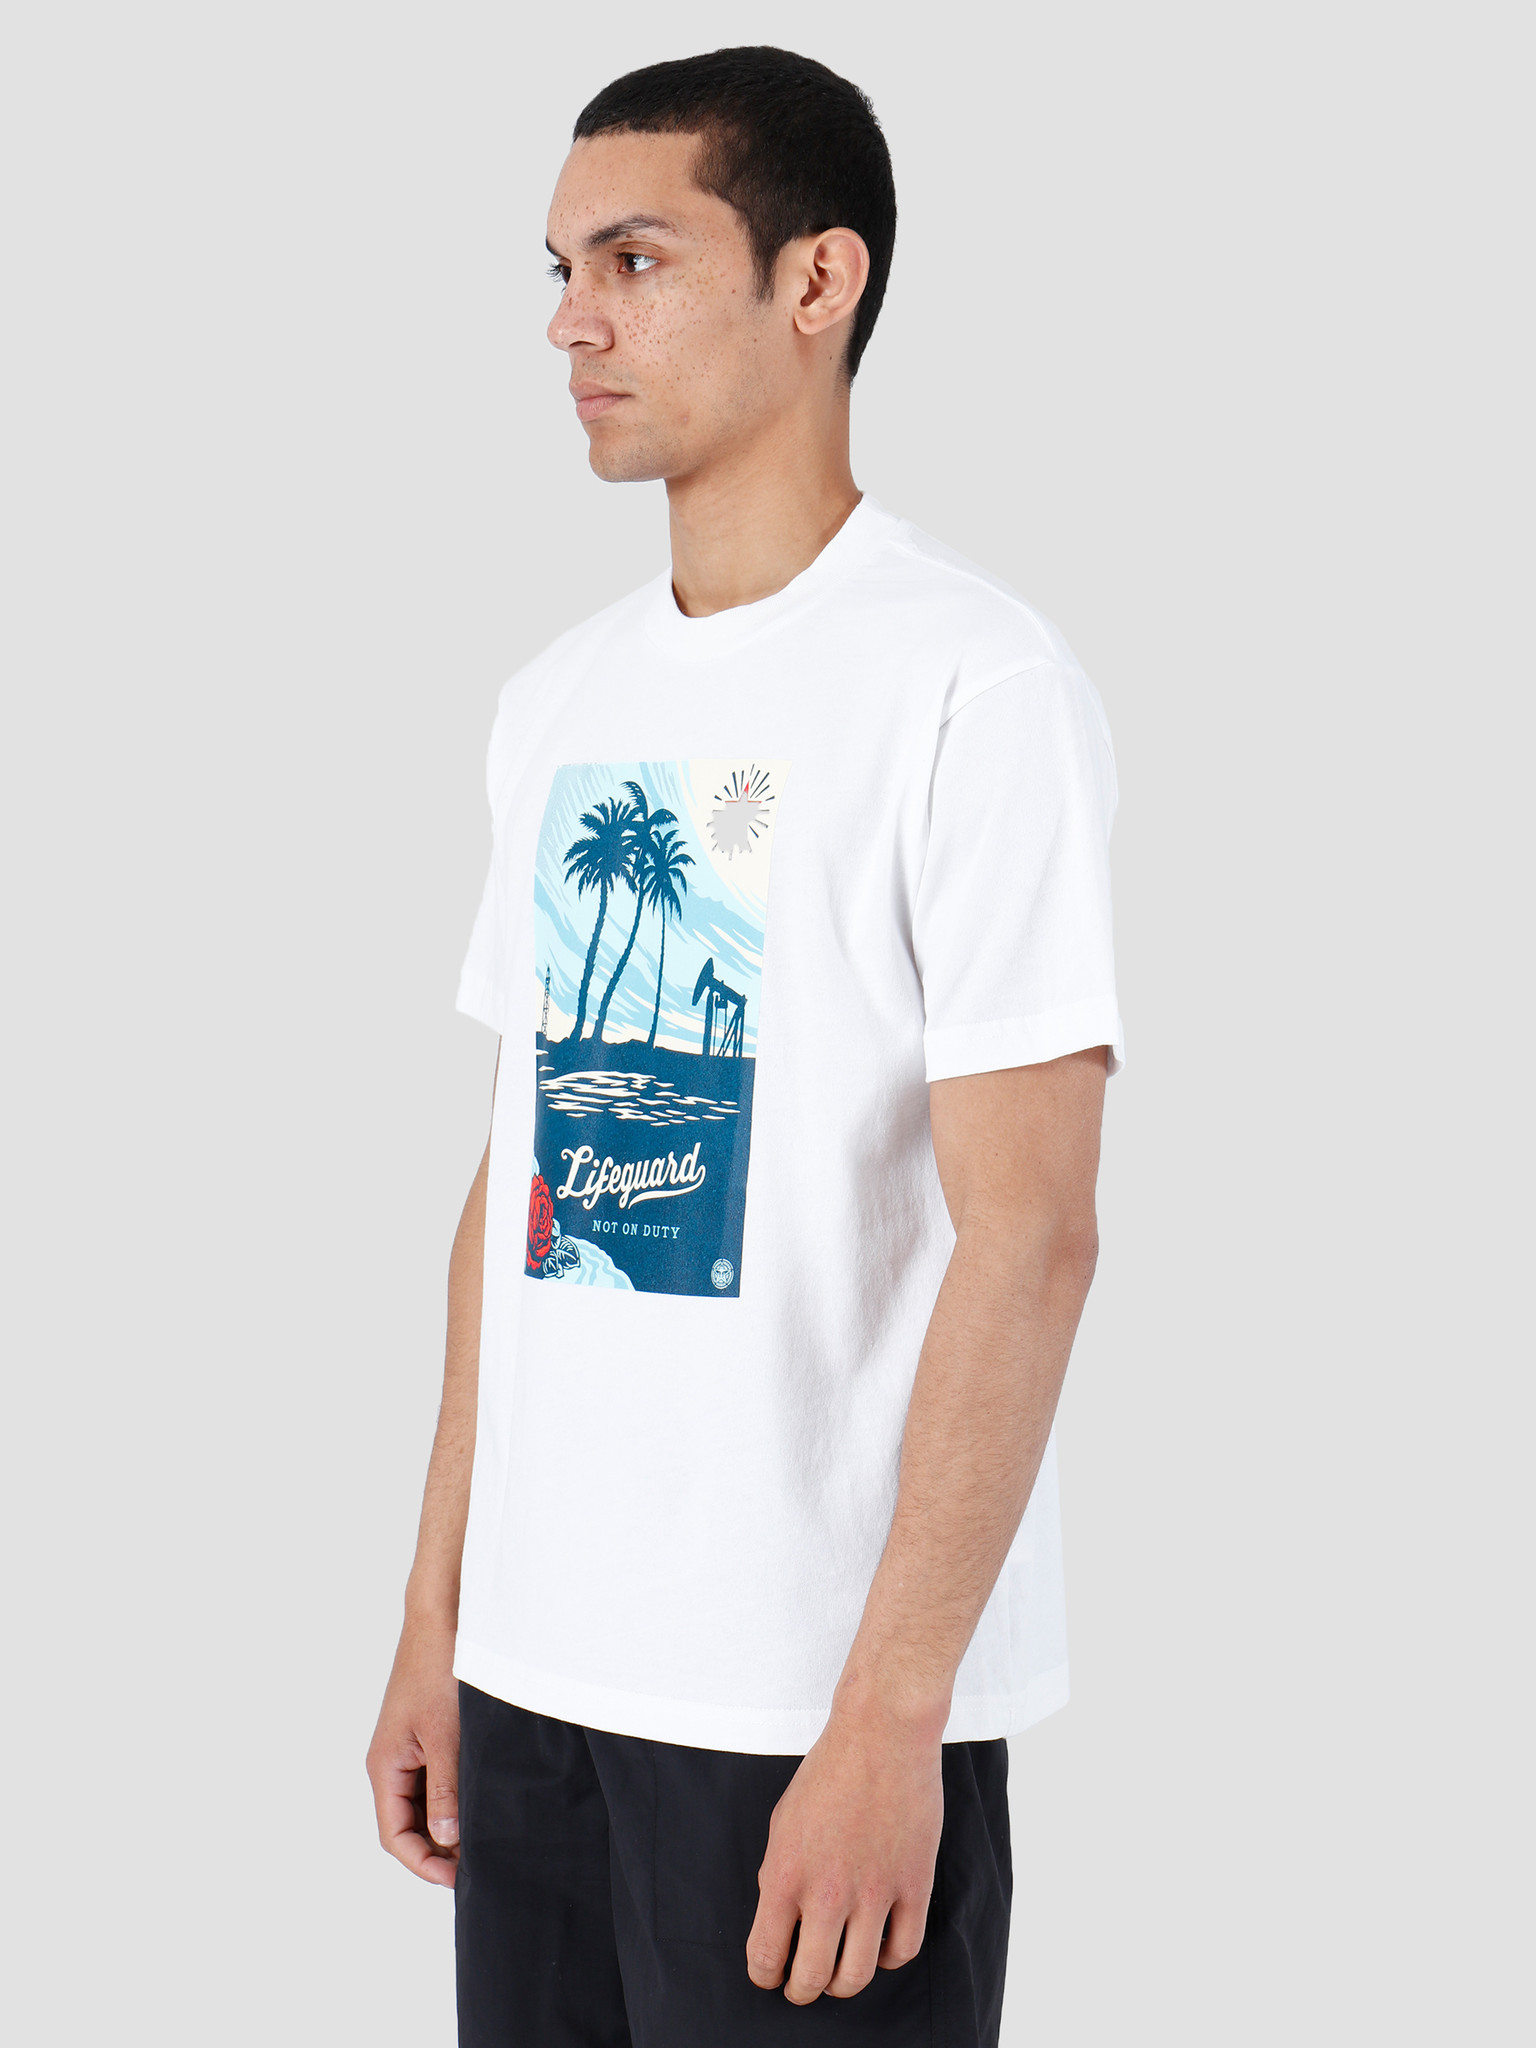 Obey Obey Lifeguard Not On Duty T-Shirt White 167292004-WHT